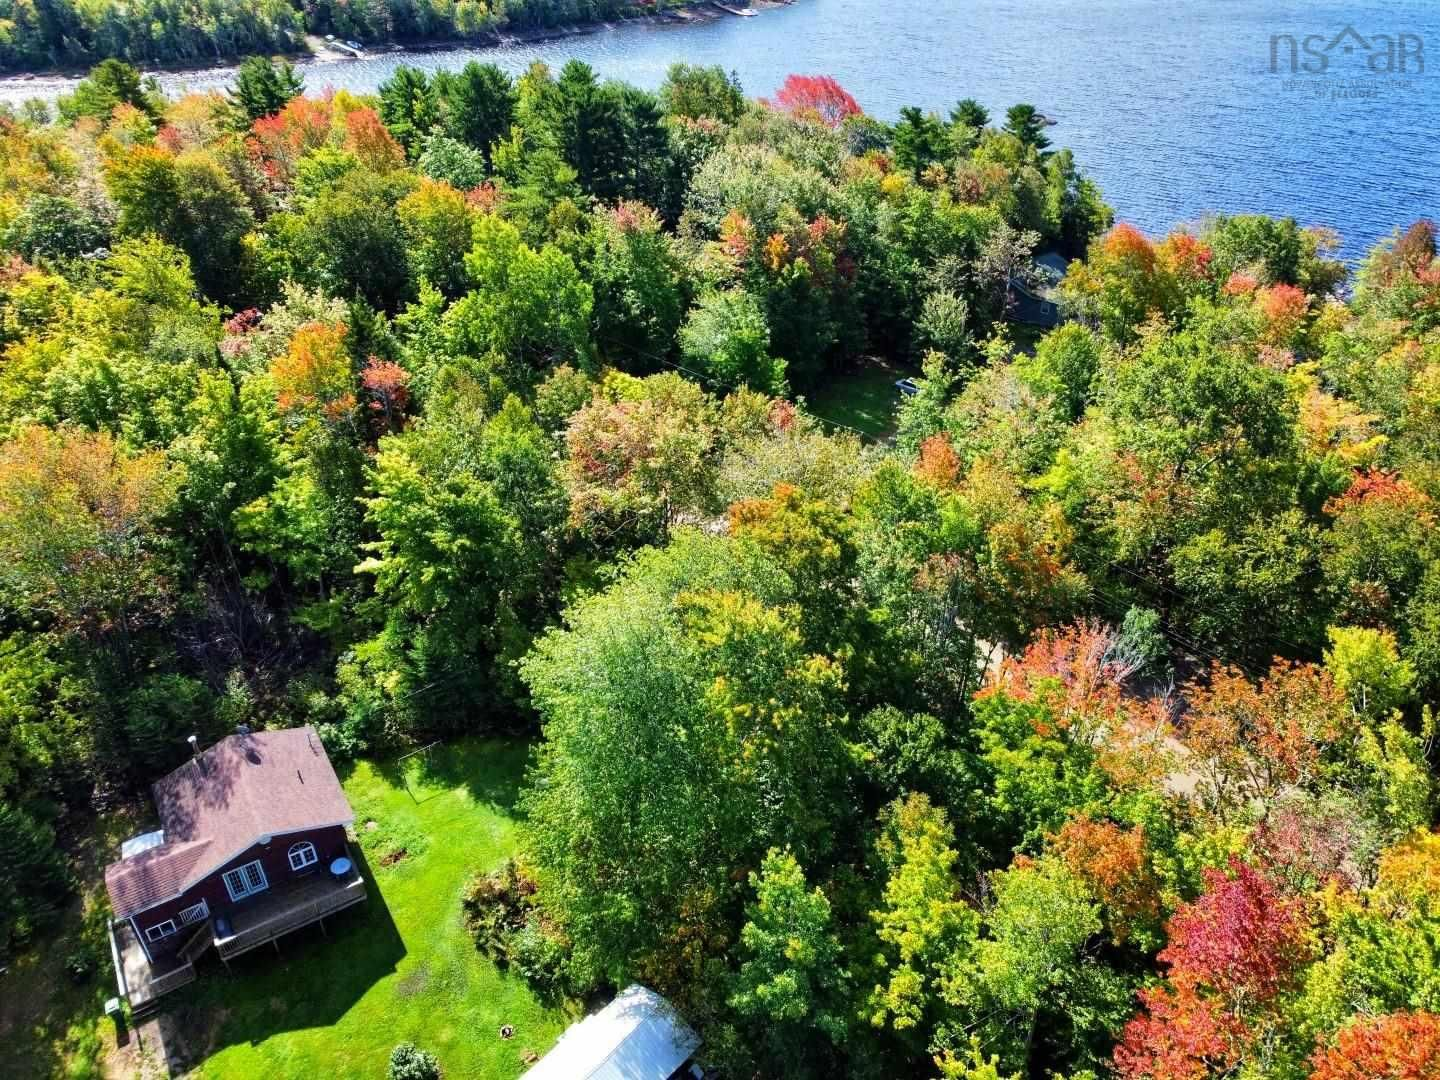 Main Photo: 1078 Black River Road in Black River Lake: 404-Kings County Residential for sale (Annapolis Valley)  : MLS®# 202124768